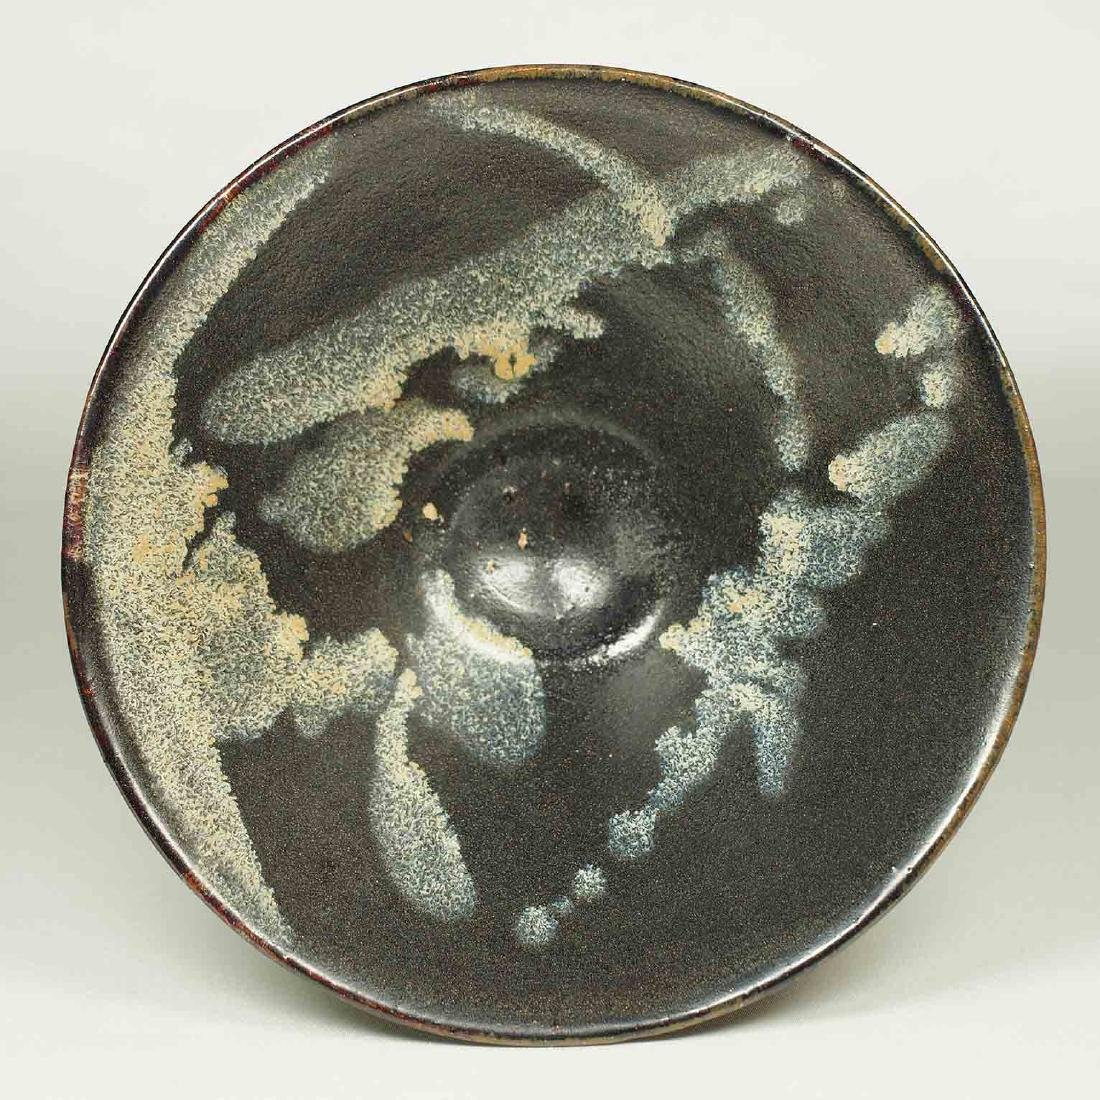 Jizhou Conical Bowl with Abstract Design, Song Dynasty